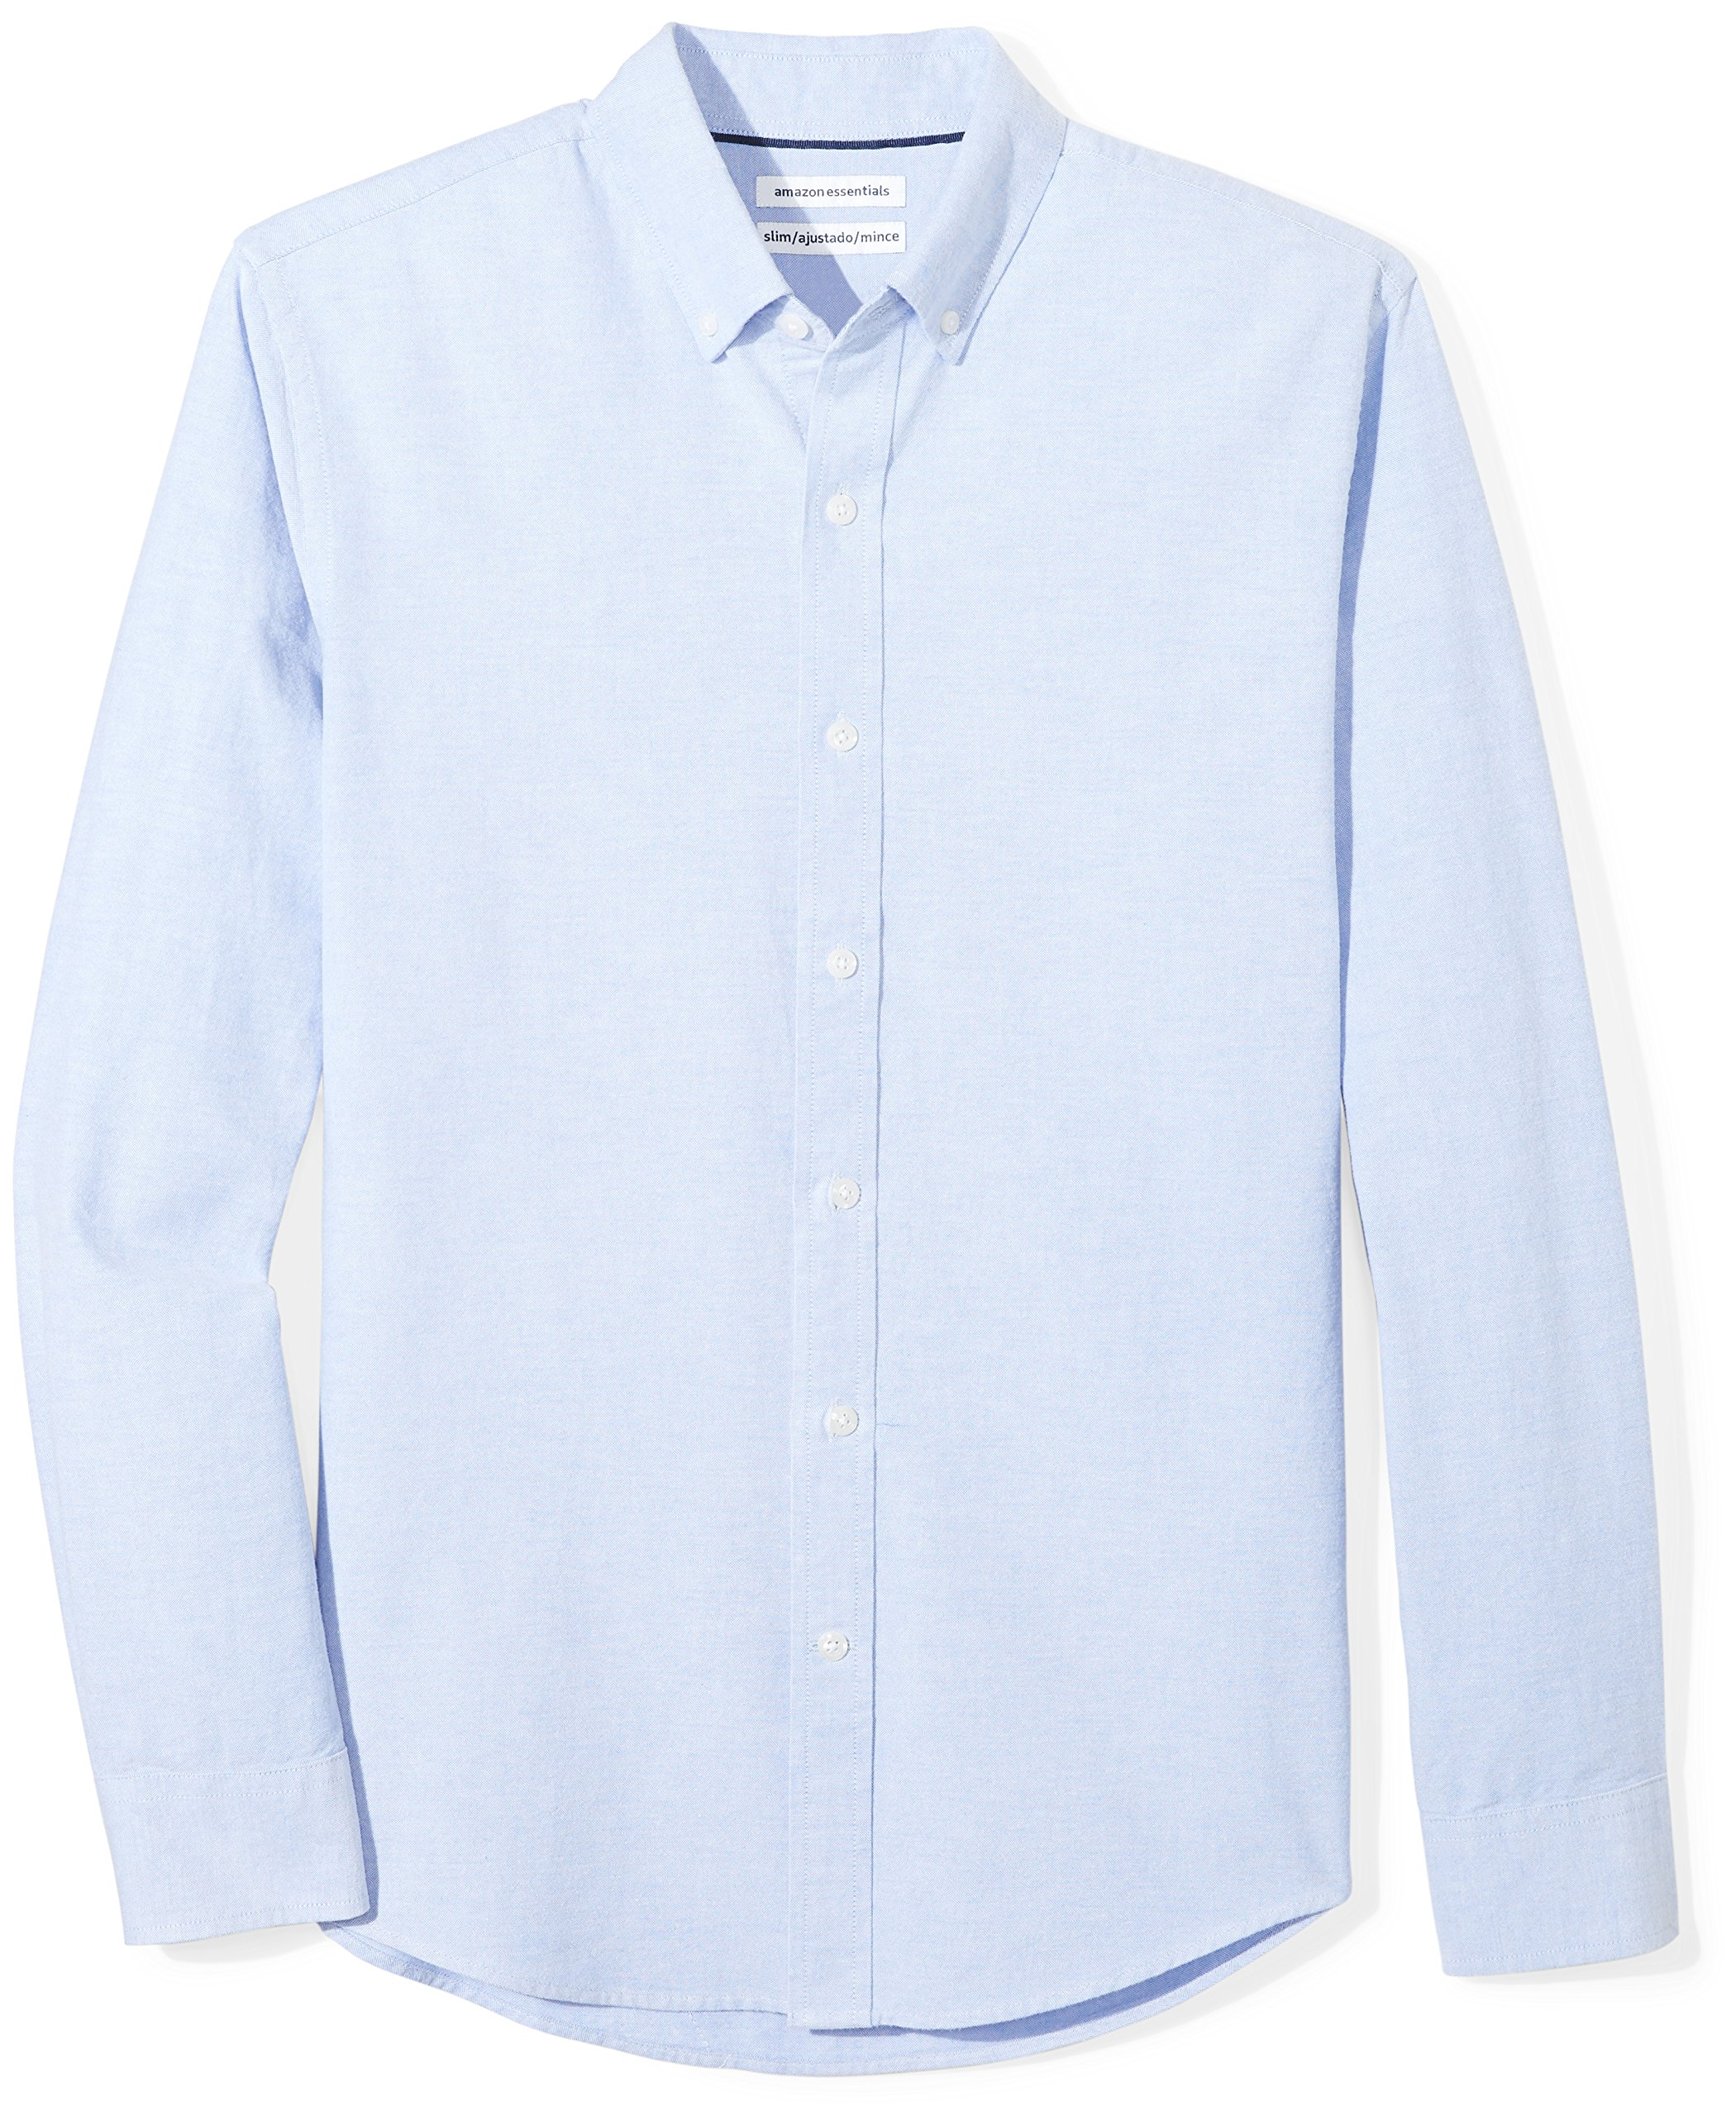 Amazon Essentials Men's Slim-Fit Long-Sleeve Solid Oxford Shirt, Blue, Large